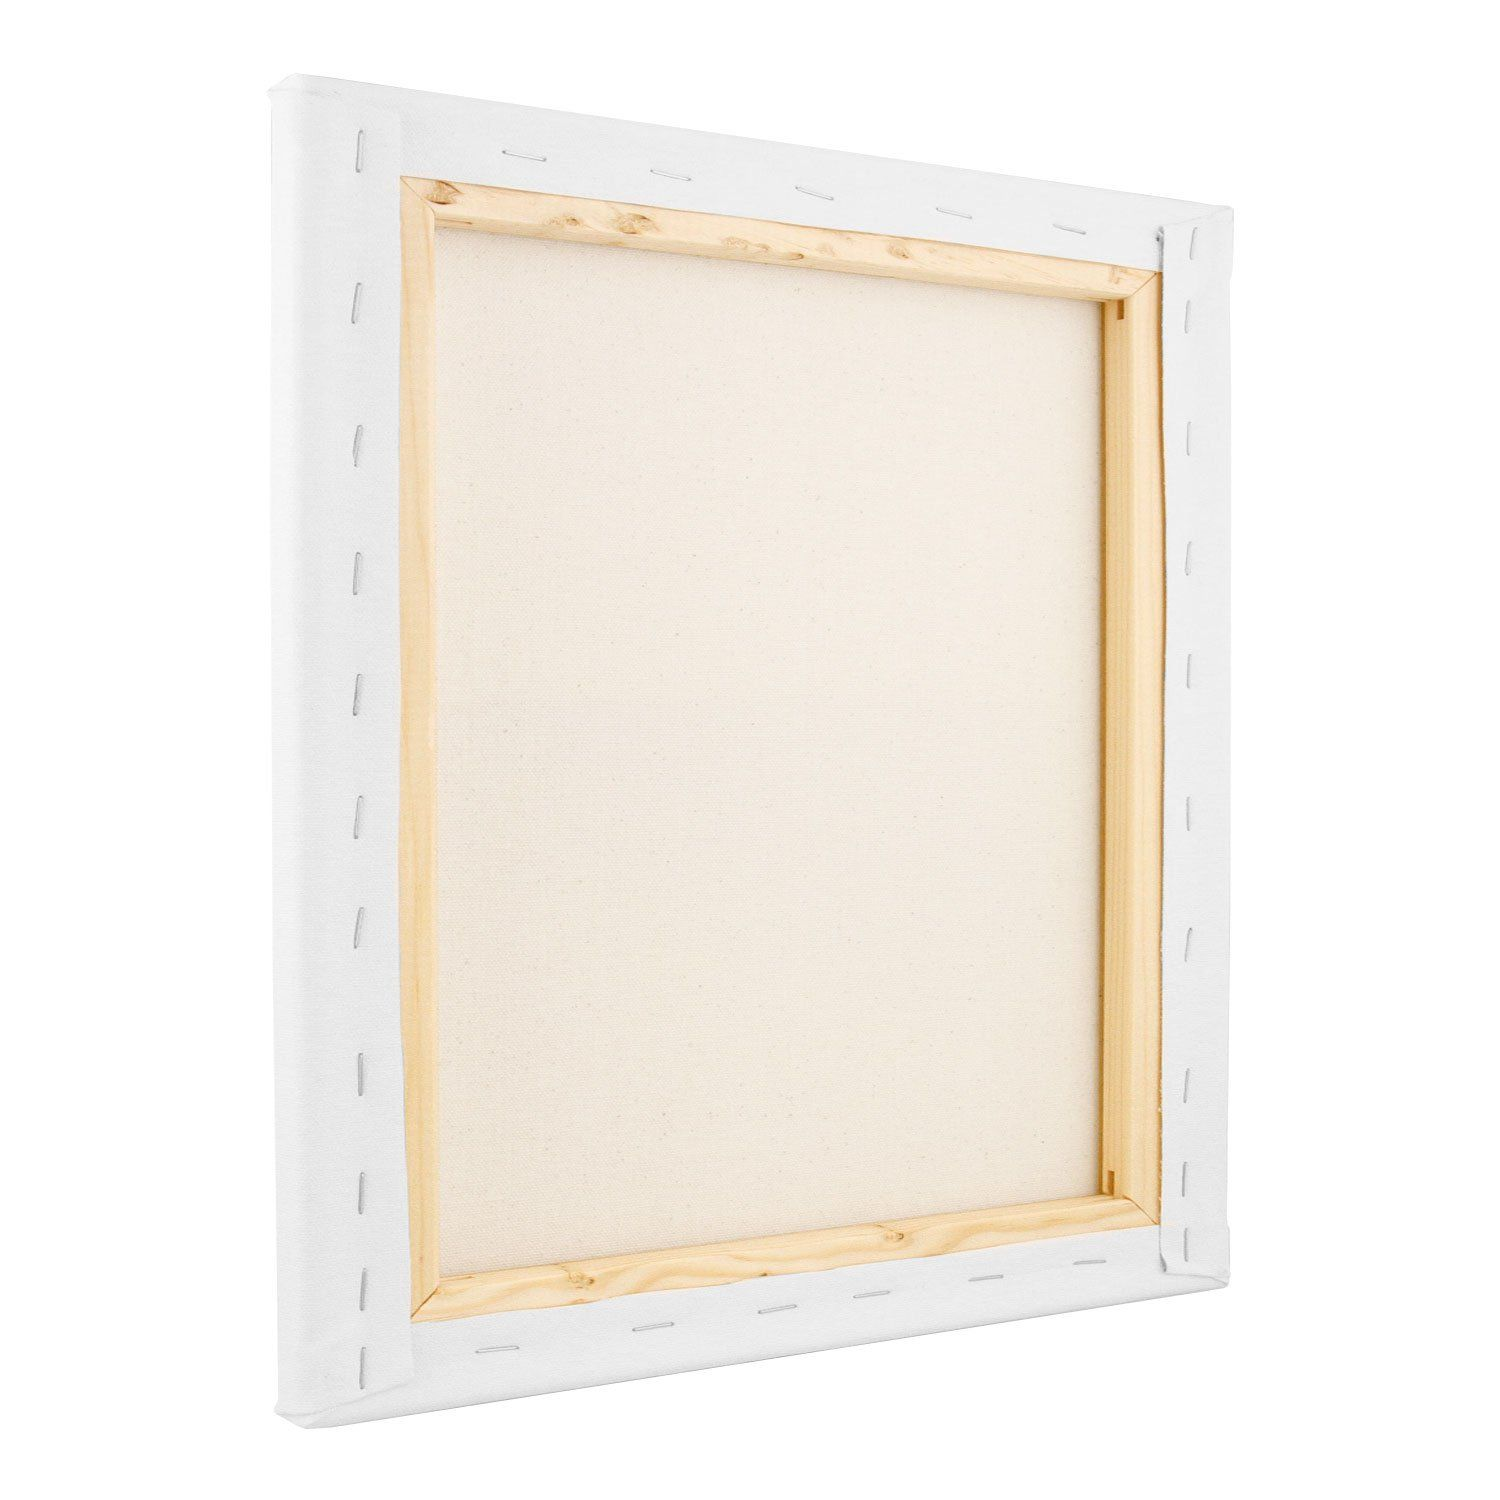 US Art Supply 4 x 12 inch Professional Quality Acid Free Stretched Canvas 6-Pack 1 Full Case of 6 Single Canvases 3//4 Profile 12 Ounce Primed Gesso